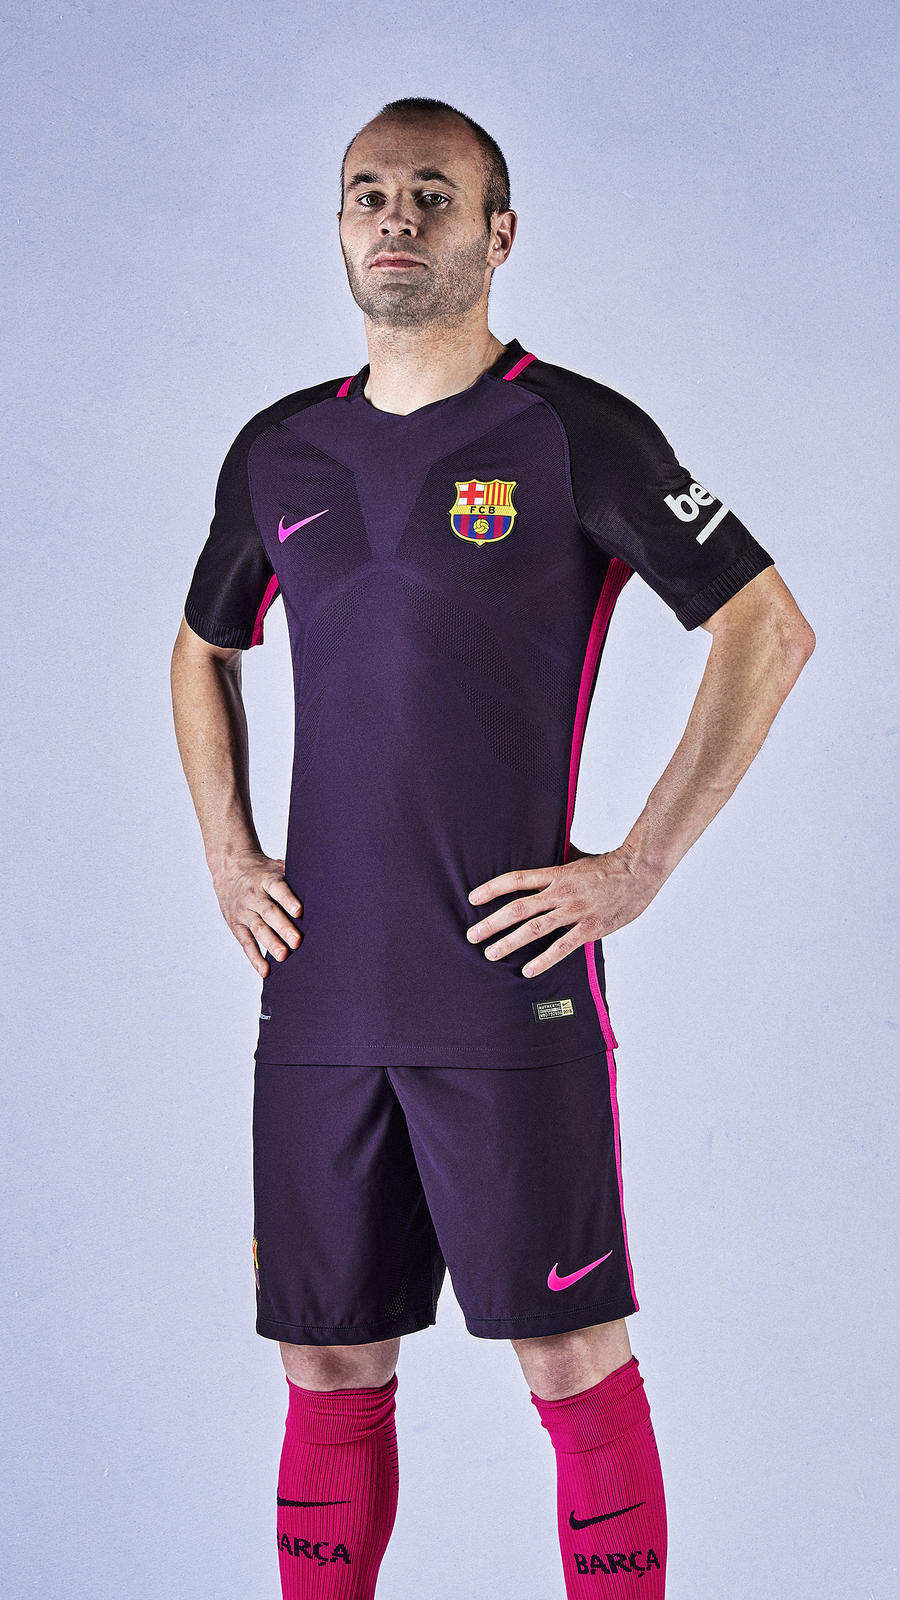 fc barcelona away kit 201617 nike news